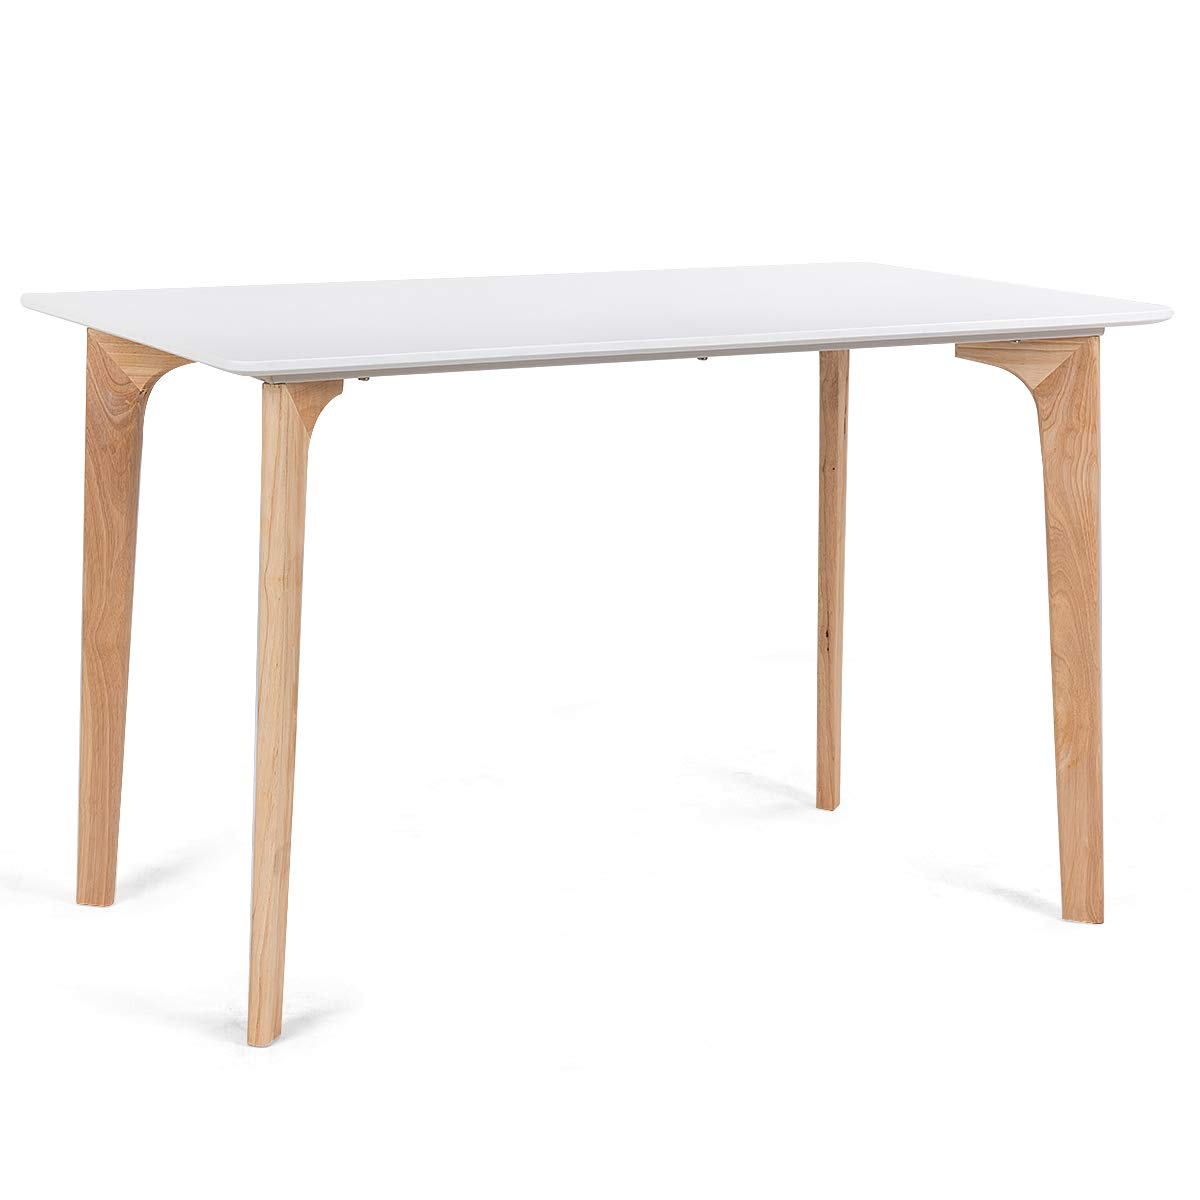 "Giantex Modern Dining Table Mid-Century Home Dining Room Kitchen Table w/Rectangular Top Wood Legs 47.5"" x 27.5"" White"